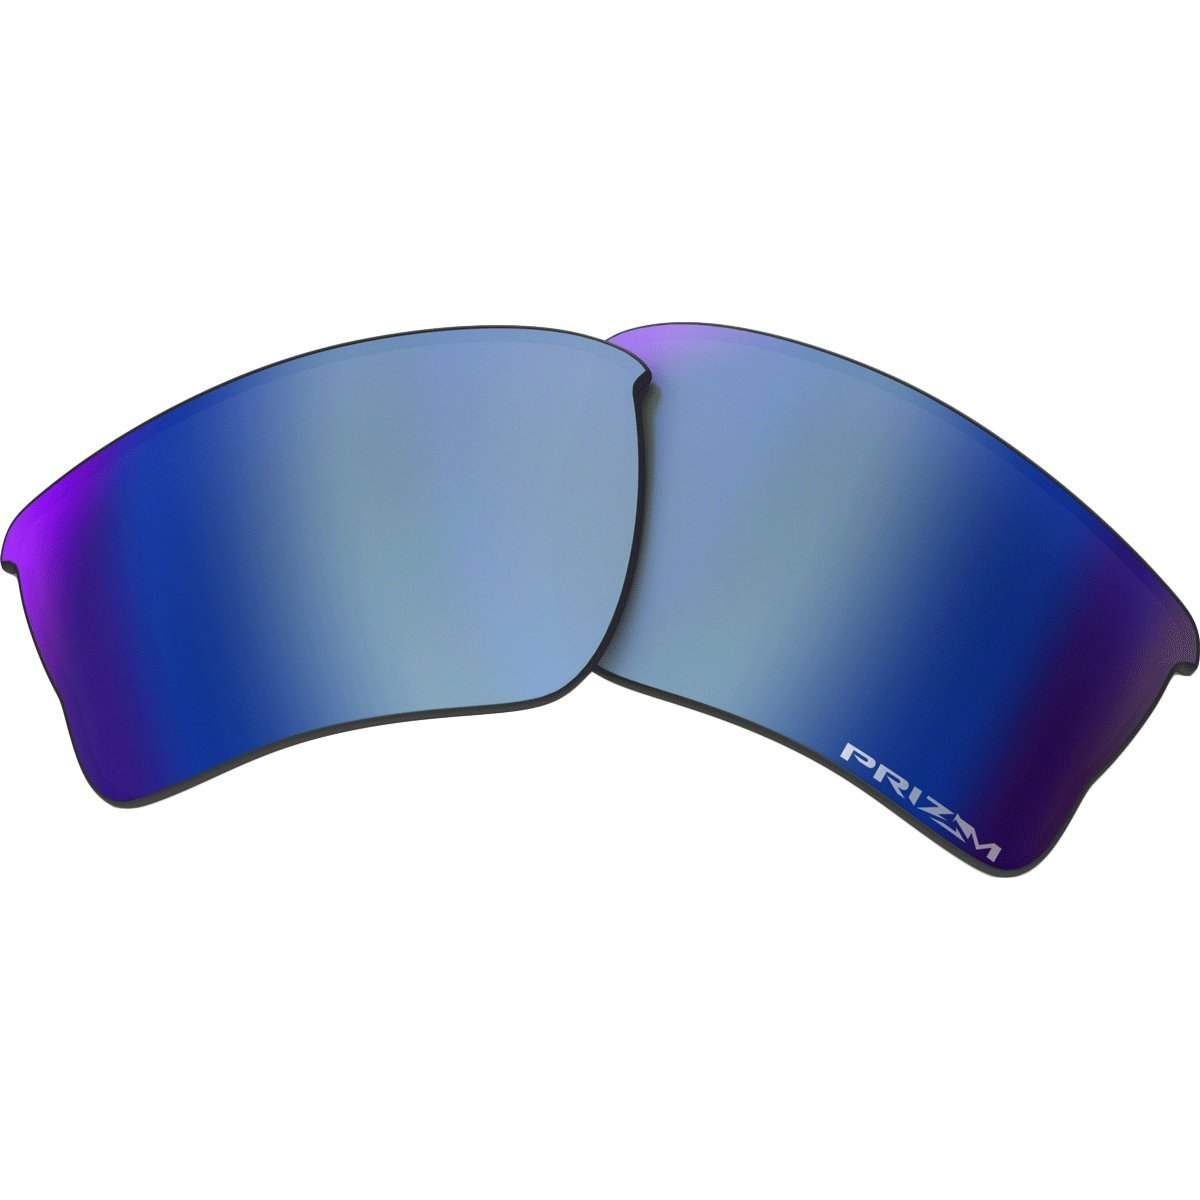 Oakley Quarter Jacket Lens Sunglass Accessories by Oakley